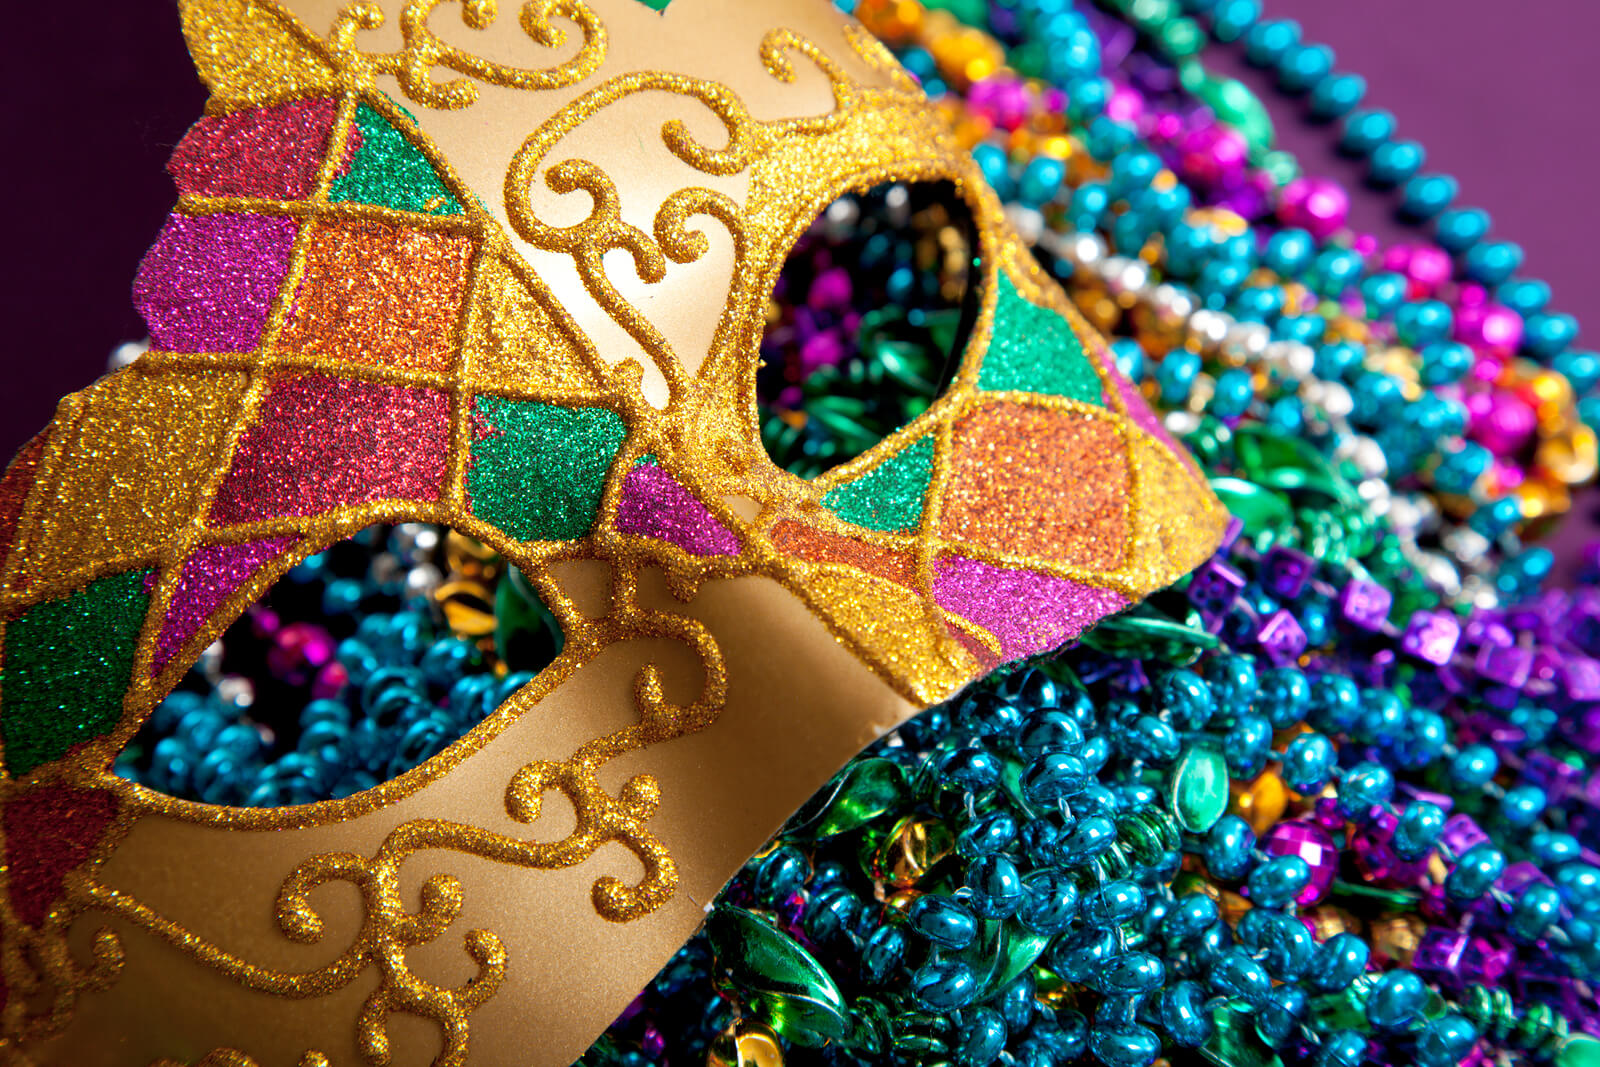 photos with photo stock beads carnival mardi image mask of background gras group colorful a